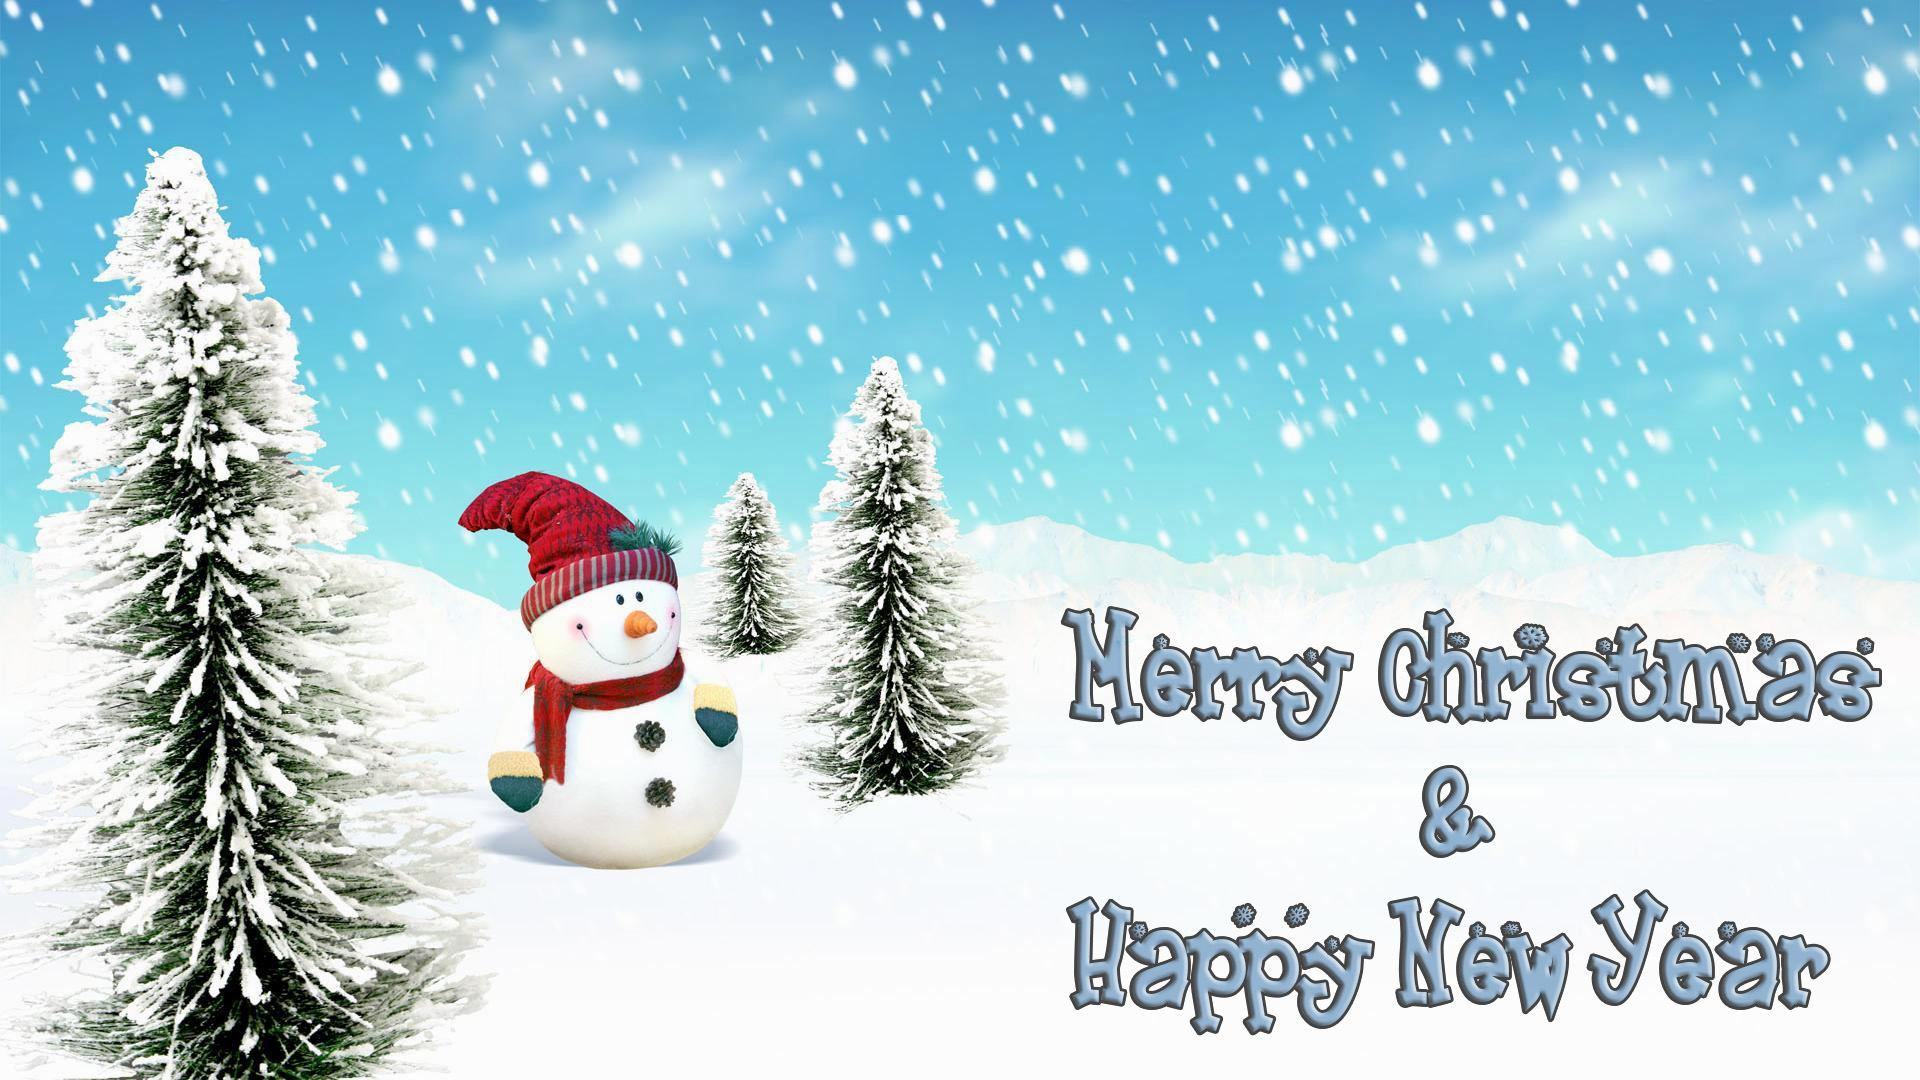 Best Merry Christmas and Happy New Year 2017 Images, Quotes, Wishes and Messages